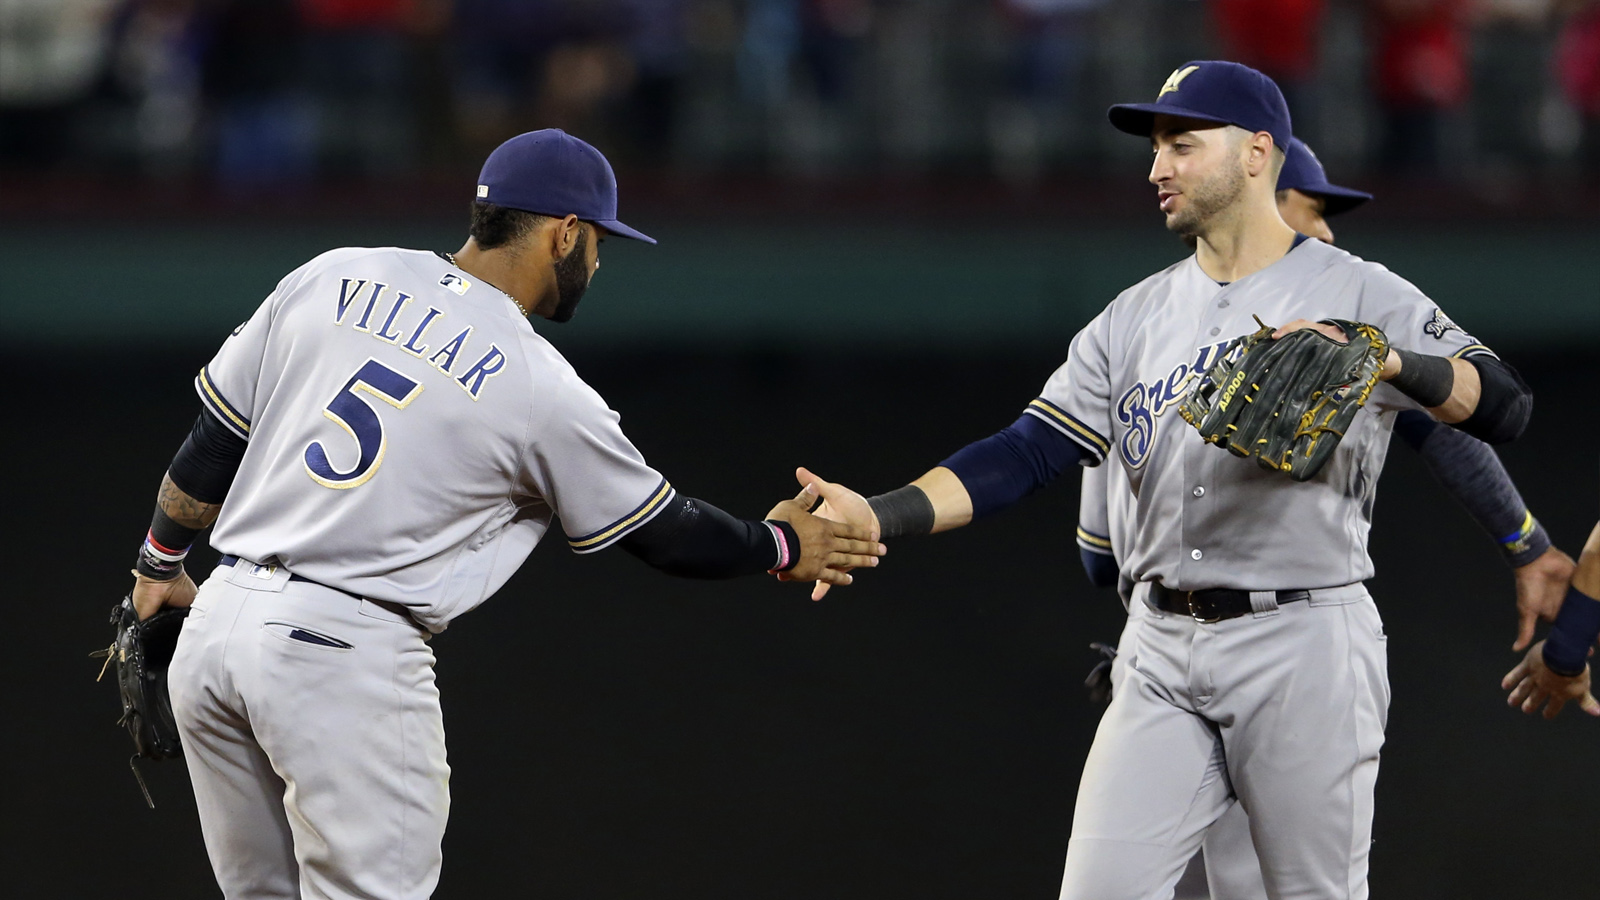 Sep 26, 2016; Arlington, TX, USA; Milwaukee Brewers second baseman Jonathan Villar (5) and left fielder Ryan Braun (8) celebrate after the game against the Texas Rangers at Globe Life Park in Arlington. Mandatory Credit: Kevin Jairaj-USA TODAY Sports